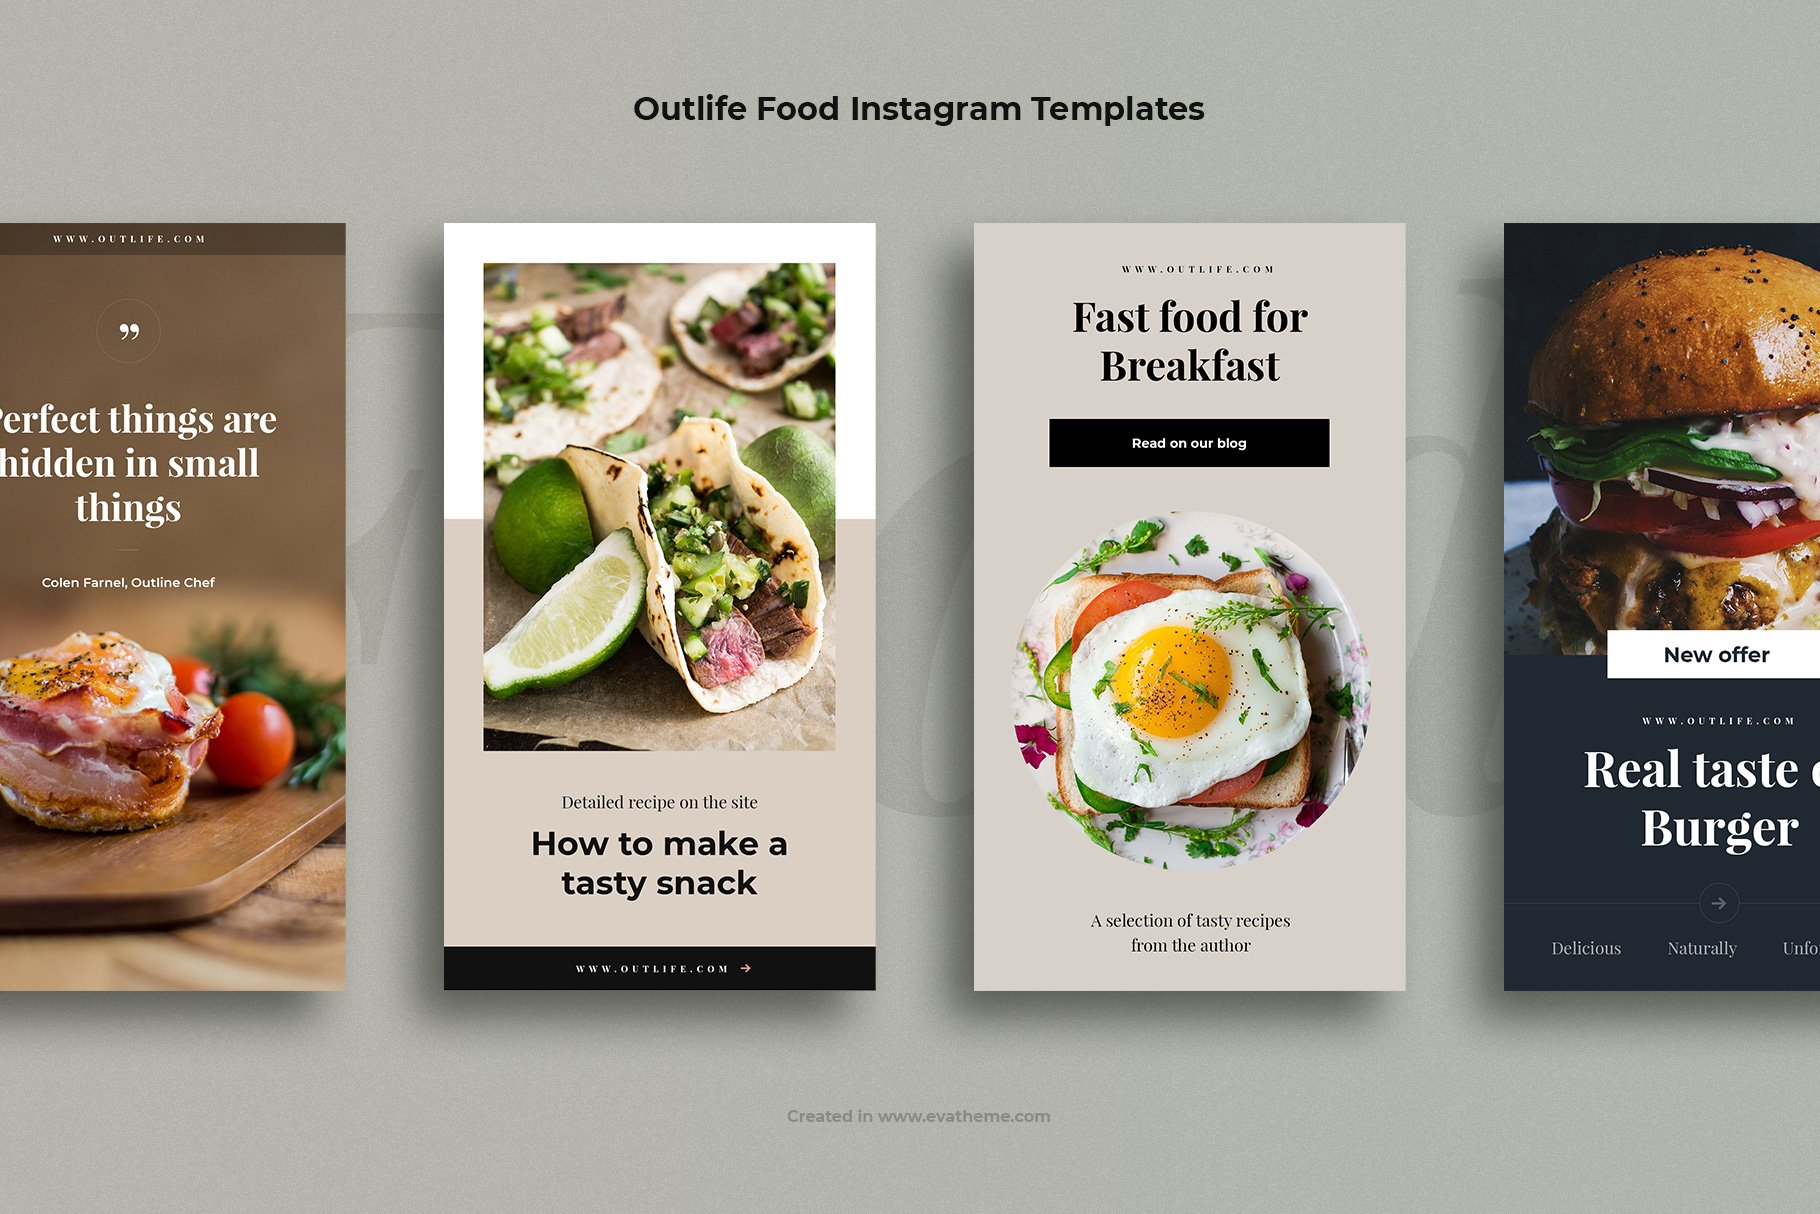 Outlife Food Instagram Templates example image 2